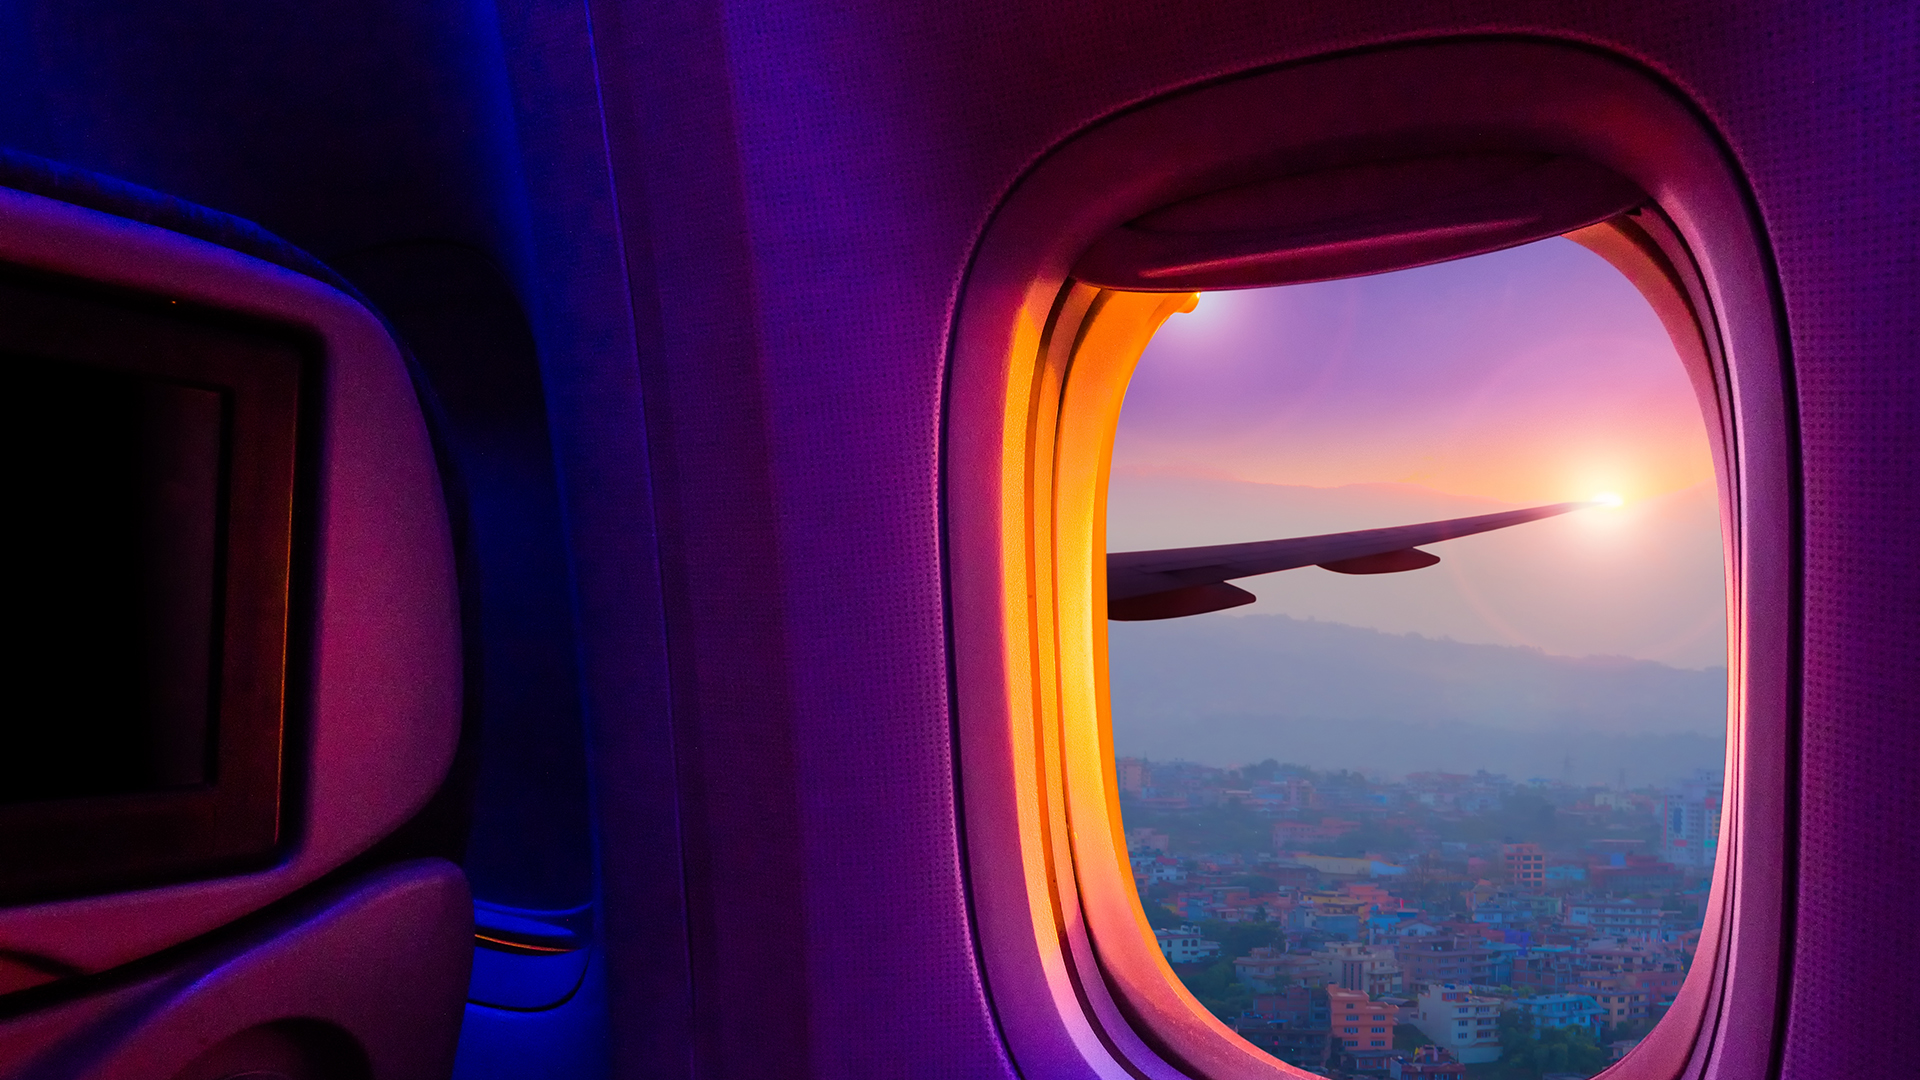 Airplane seat and open window looking out onto the wing and sunset